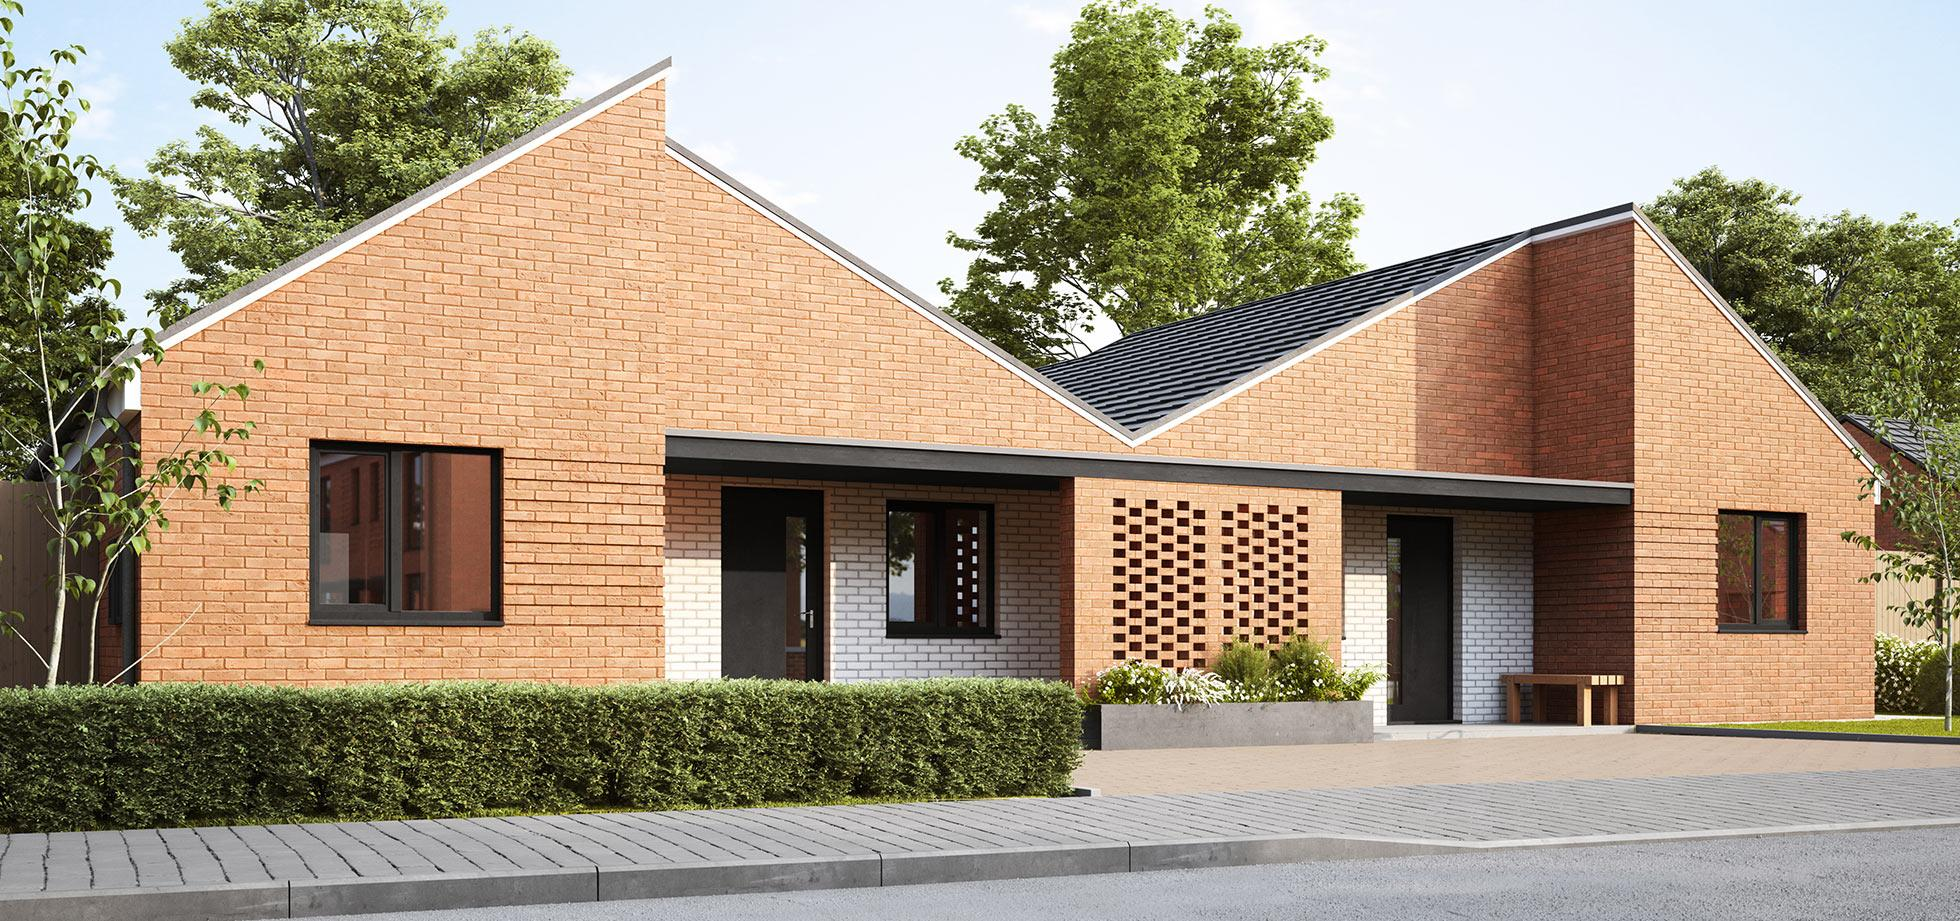 An external view of the Buddleia bungalow at Lowfield Green from Shape Homes York.